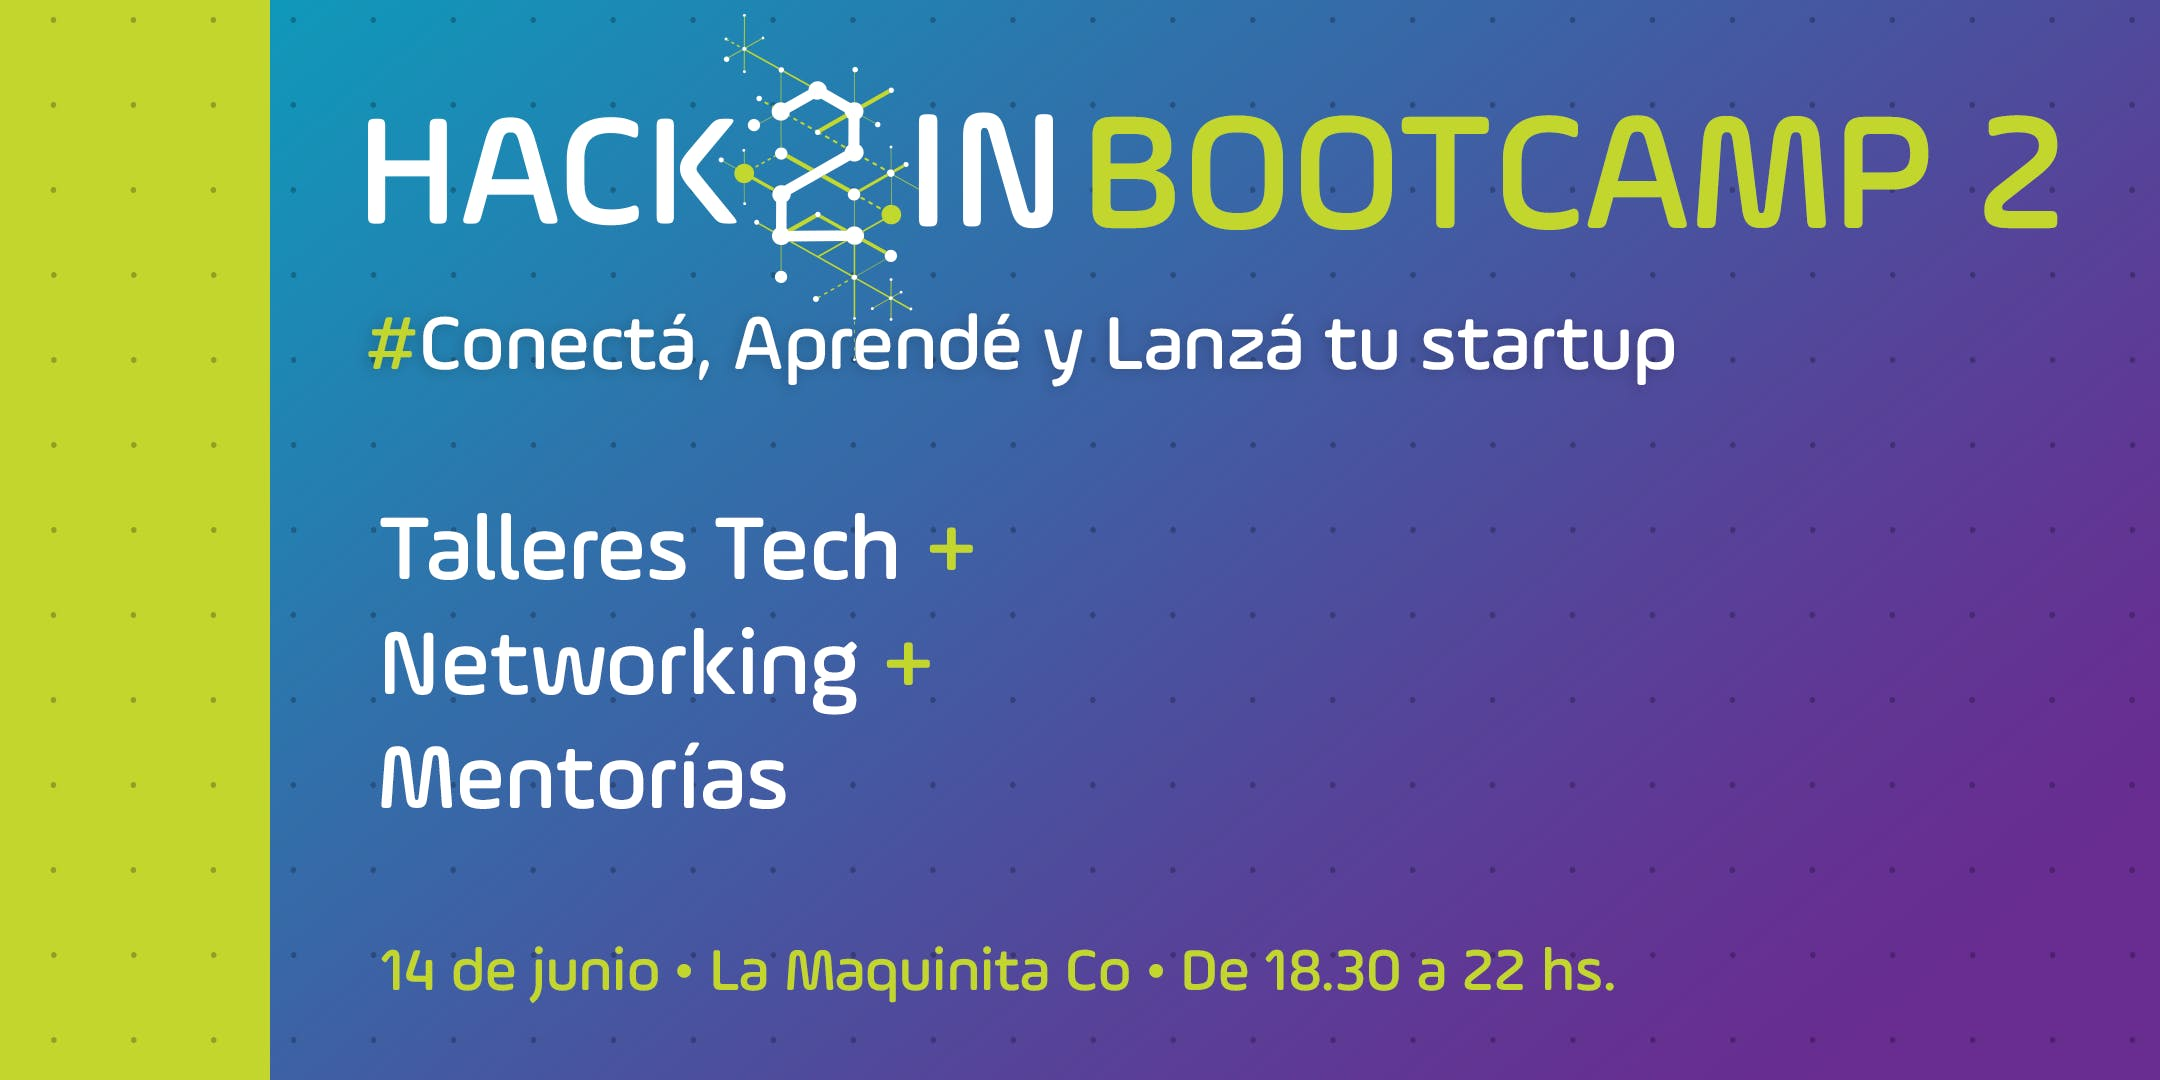 ¡Hack2in Bootcamp 2!